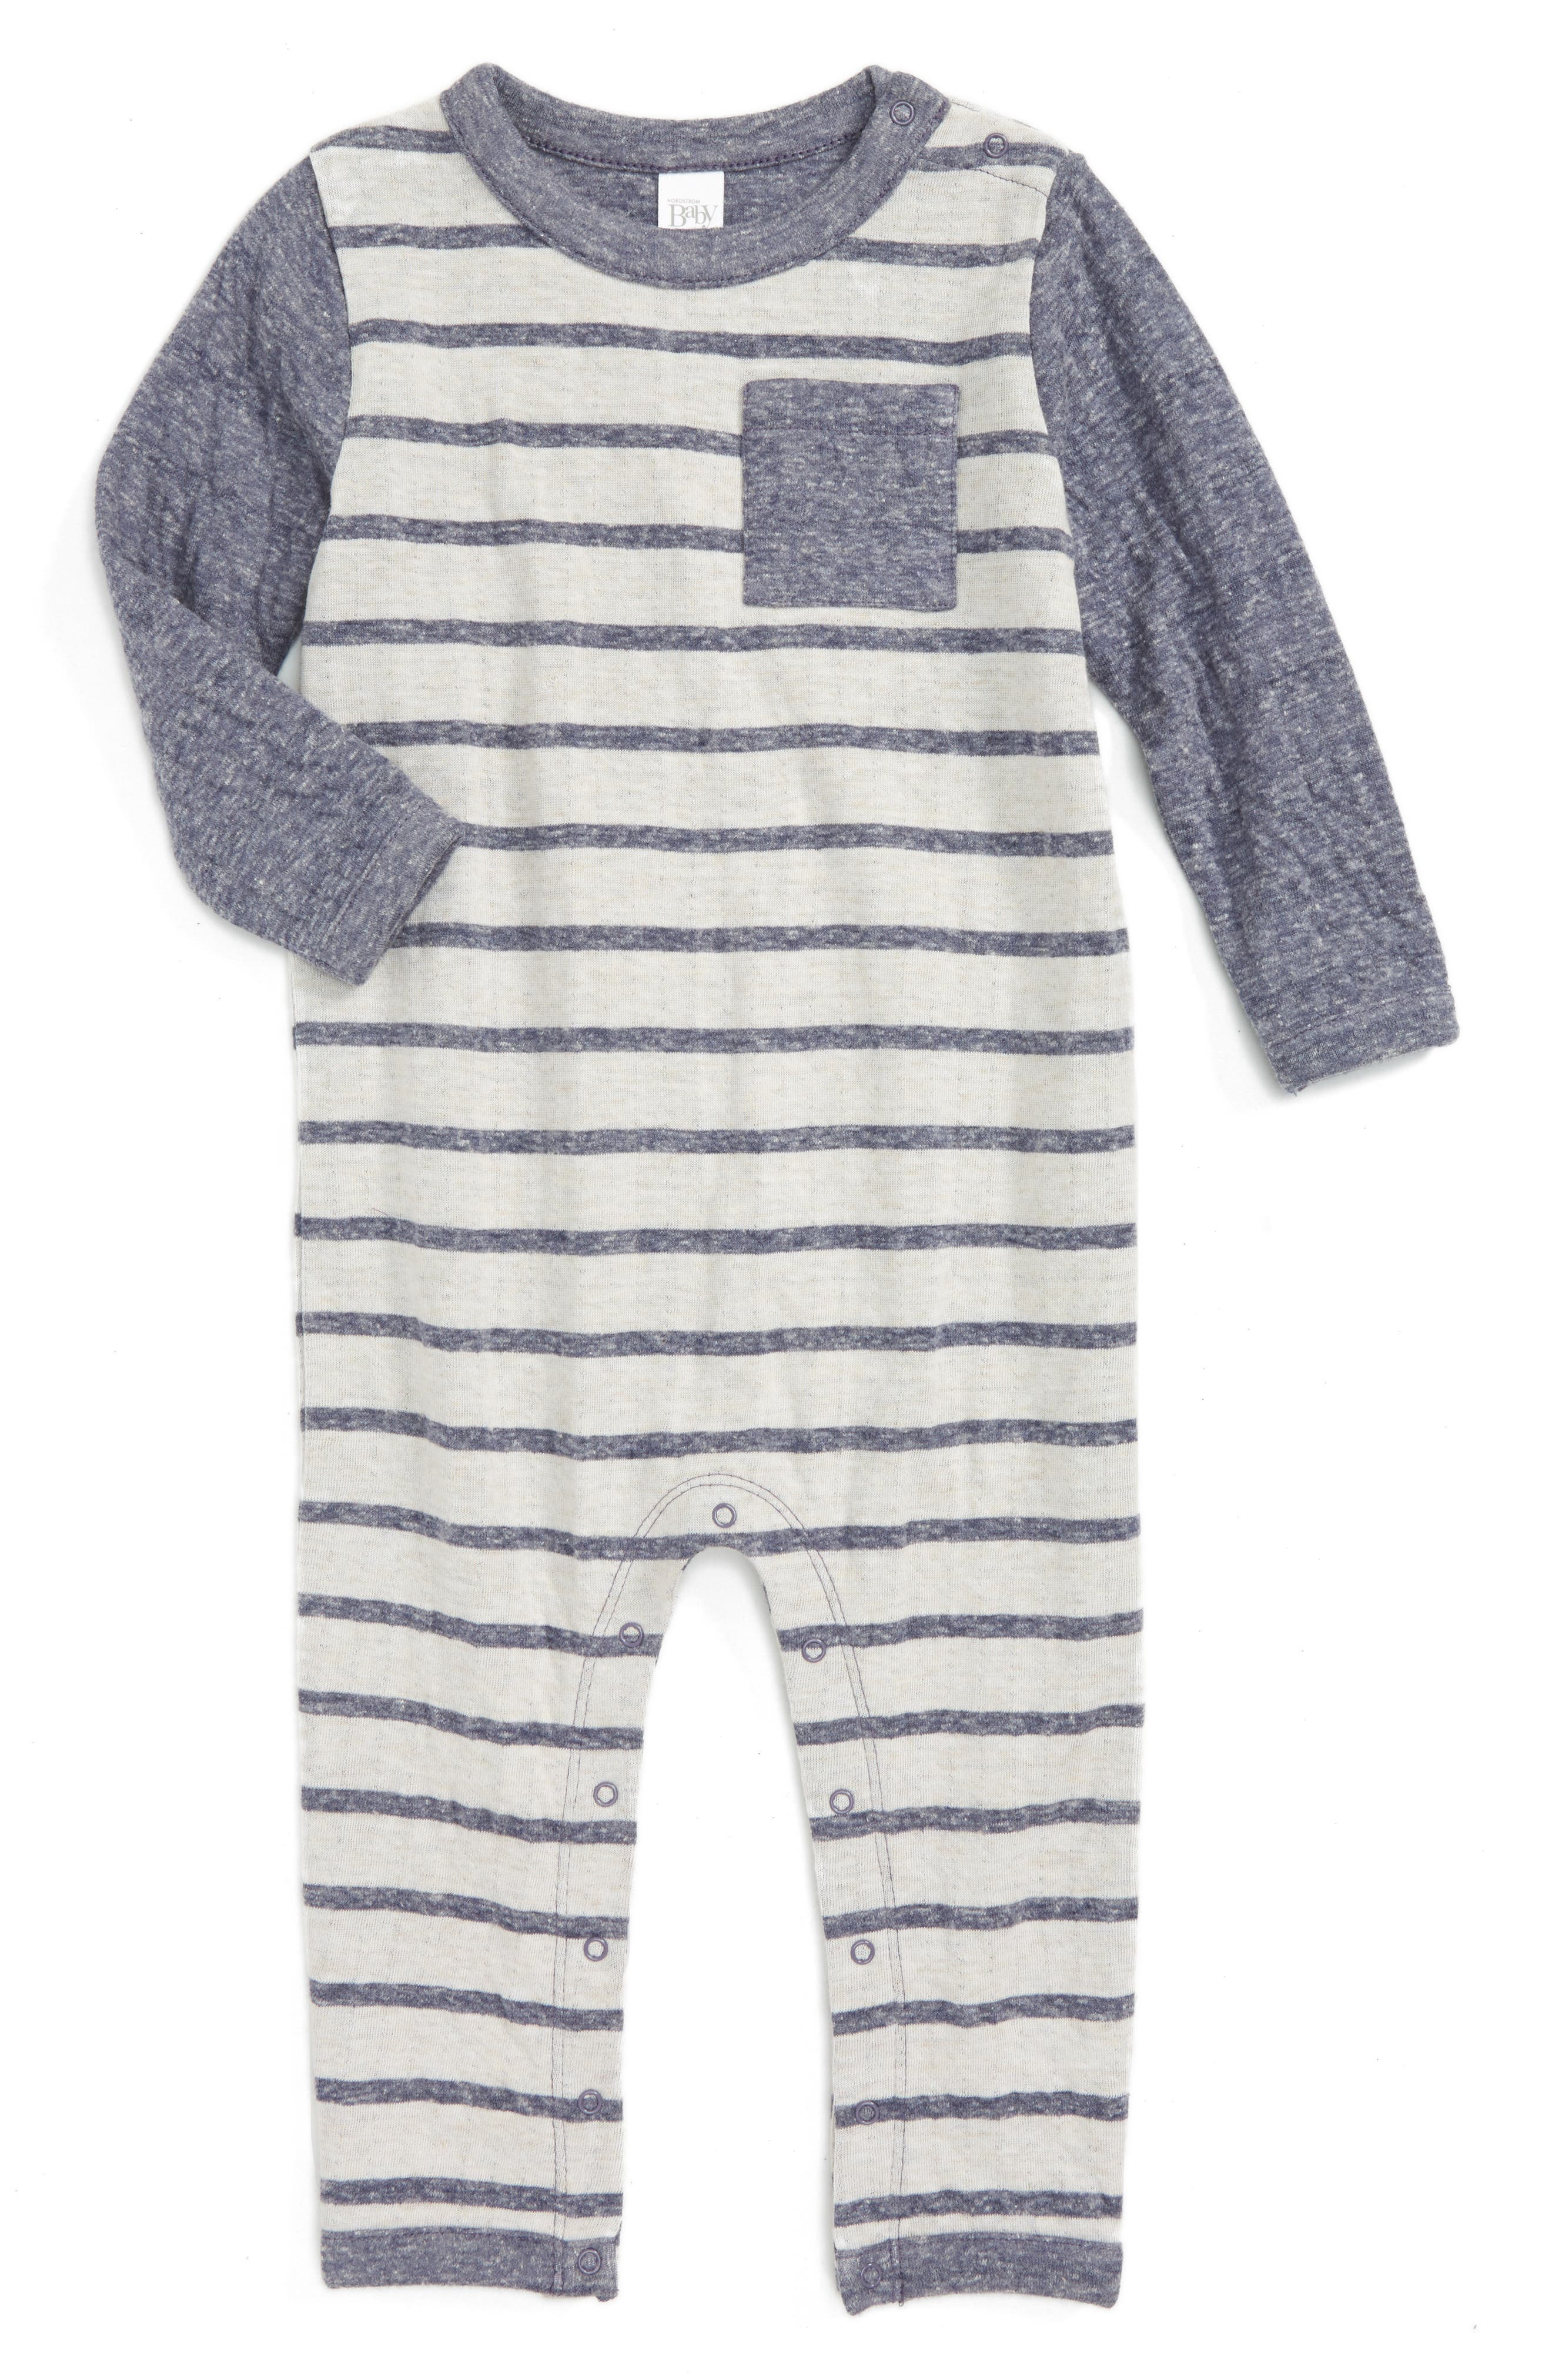 Nordstrom Baby Double Knit Romper (Baby Boys)